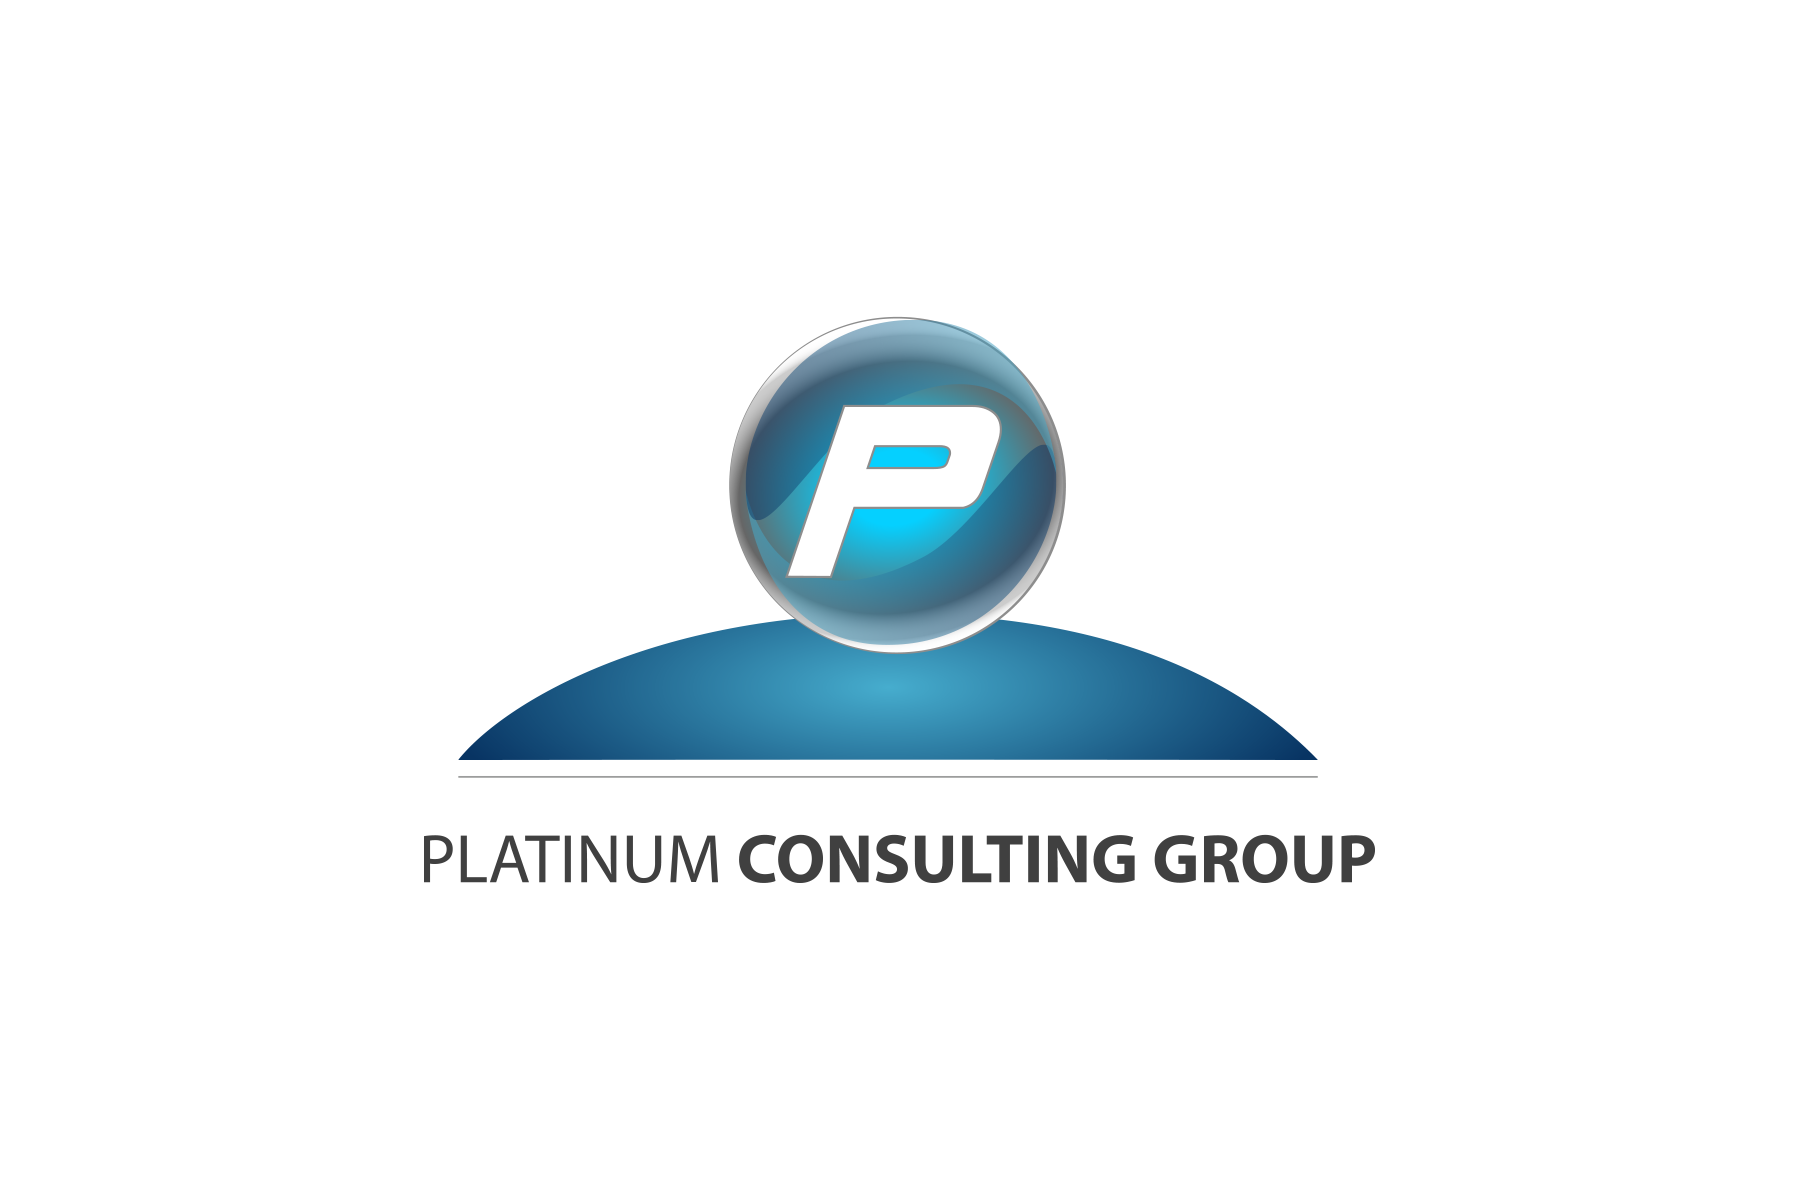 Logo Design by Rozsa Matyas - Entry No. 67 in the Logo Design Contest Captivating Logo Design for Platinum Consulting Group.